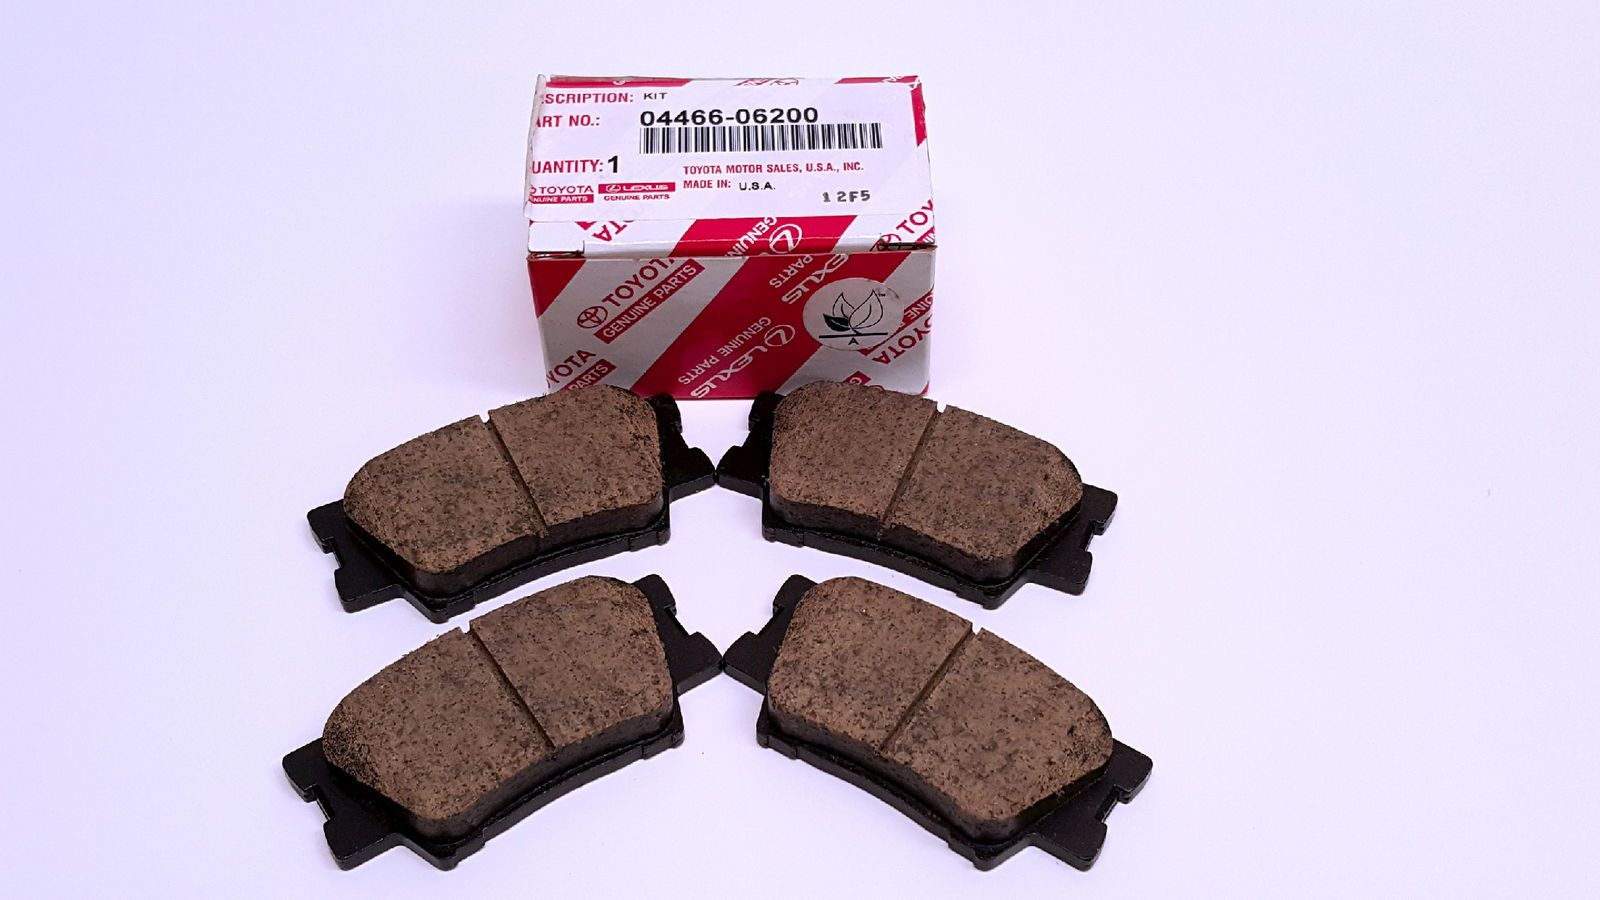 Cool great toyota premium rear brake pads for toyota rav4 2006 cool great toyota premium rear brake pads for toyota rav4 2006 2016 2017 2018 cars 2017 pinterest rear brakes brakes pads and toyota rav fandeluxe Choice Image